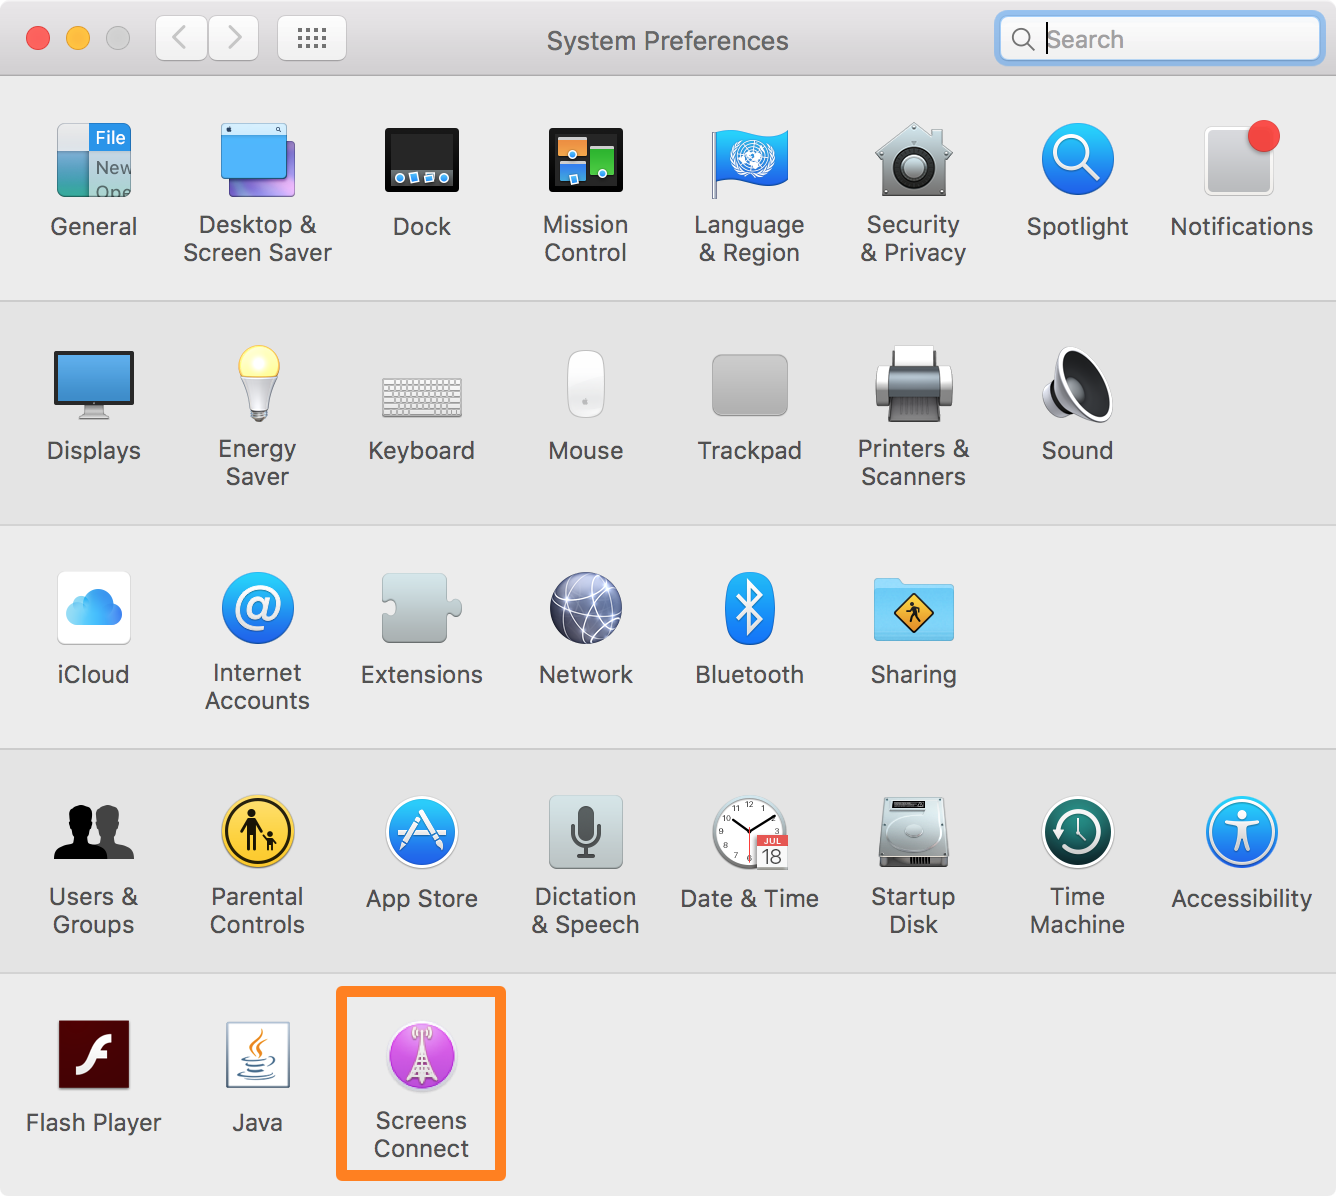 Screens Connect System Preferences Preferences Pane